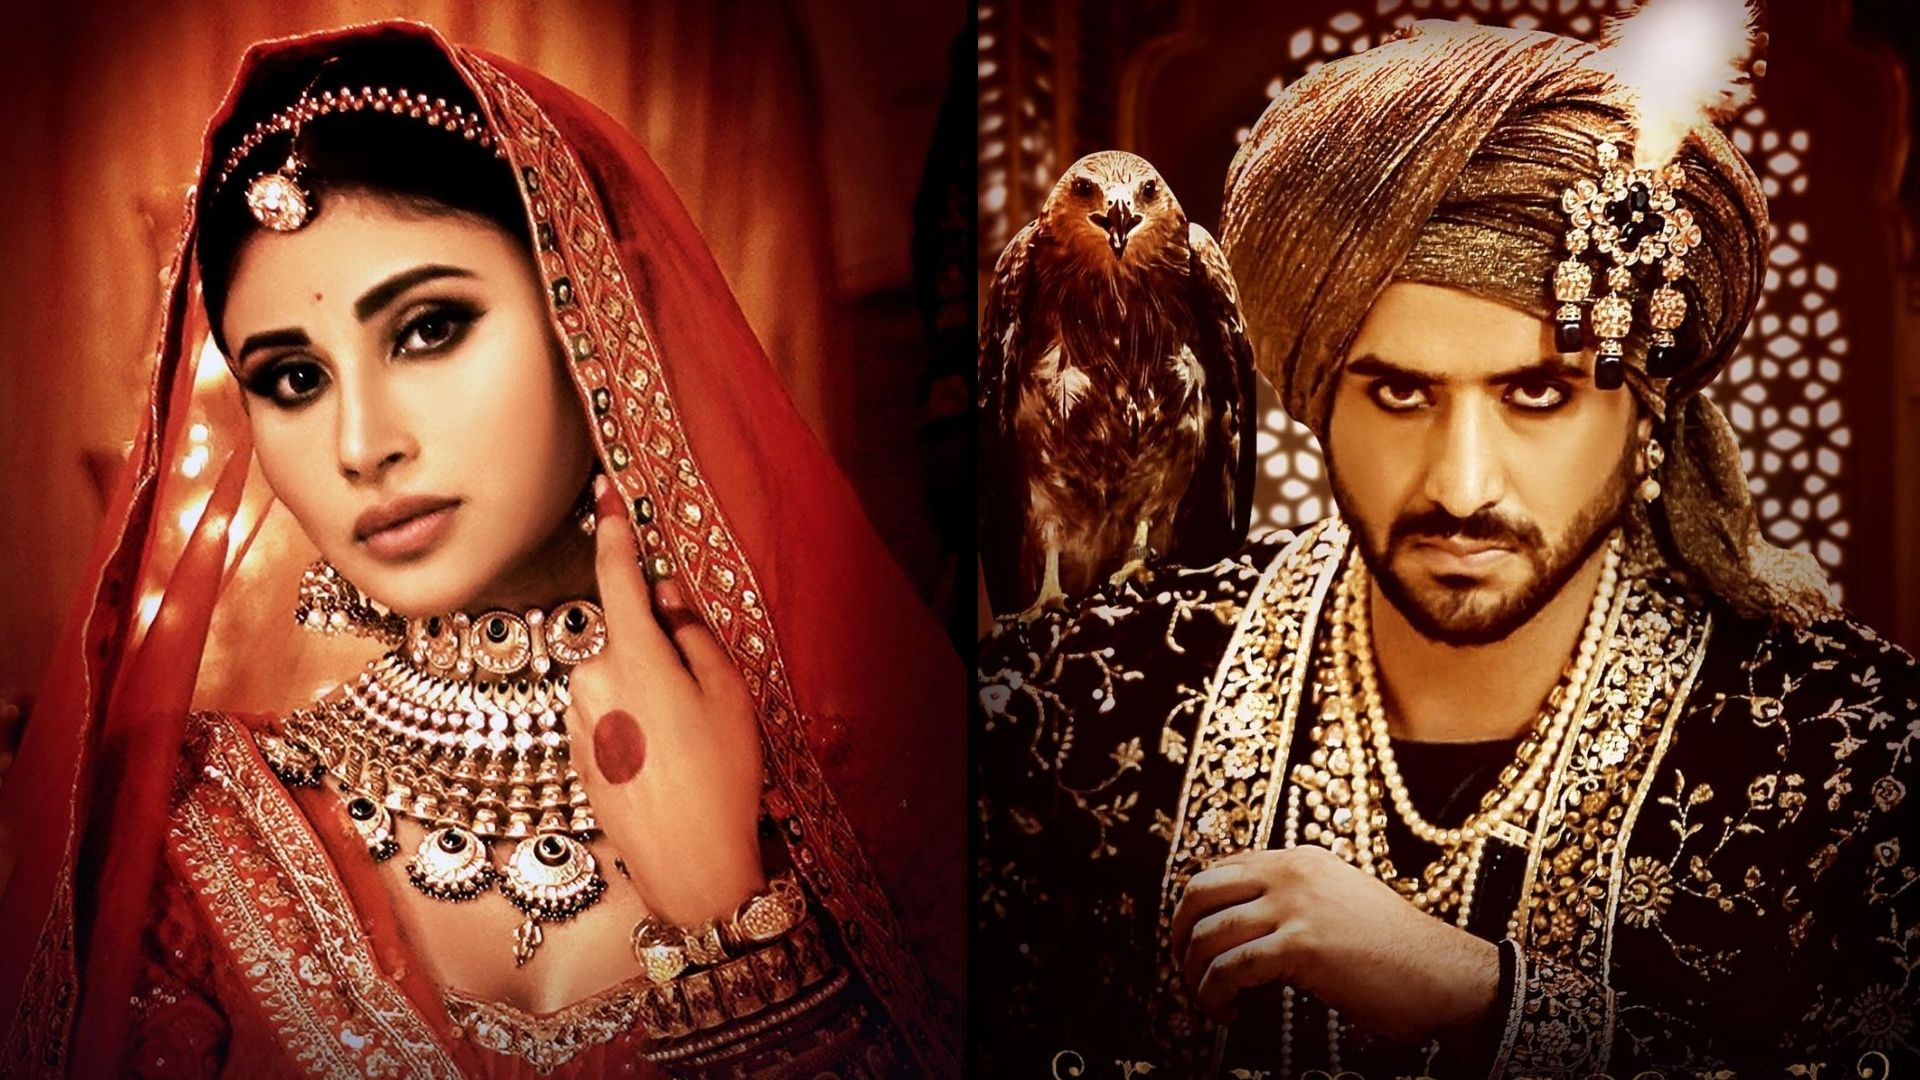 Jodaa New Poster: Mouni Roy And Aly Goni Are The New Definition of Elegance And Supremacy